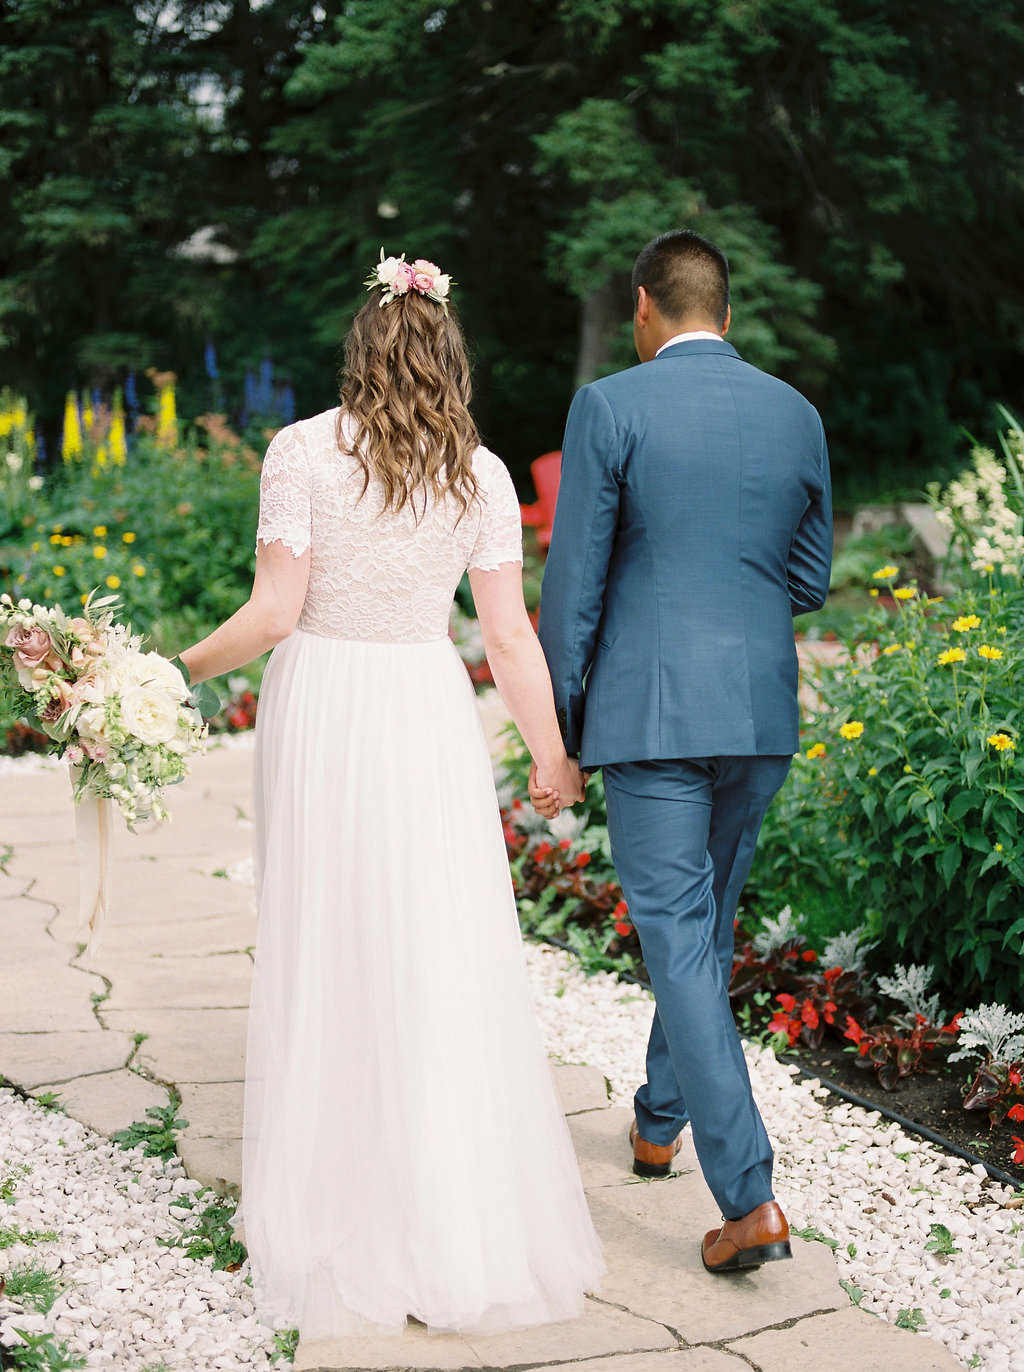 Best Wedding Locations in Manitoba - Stone House Creative